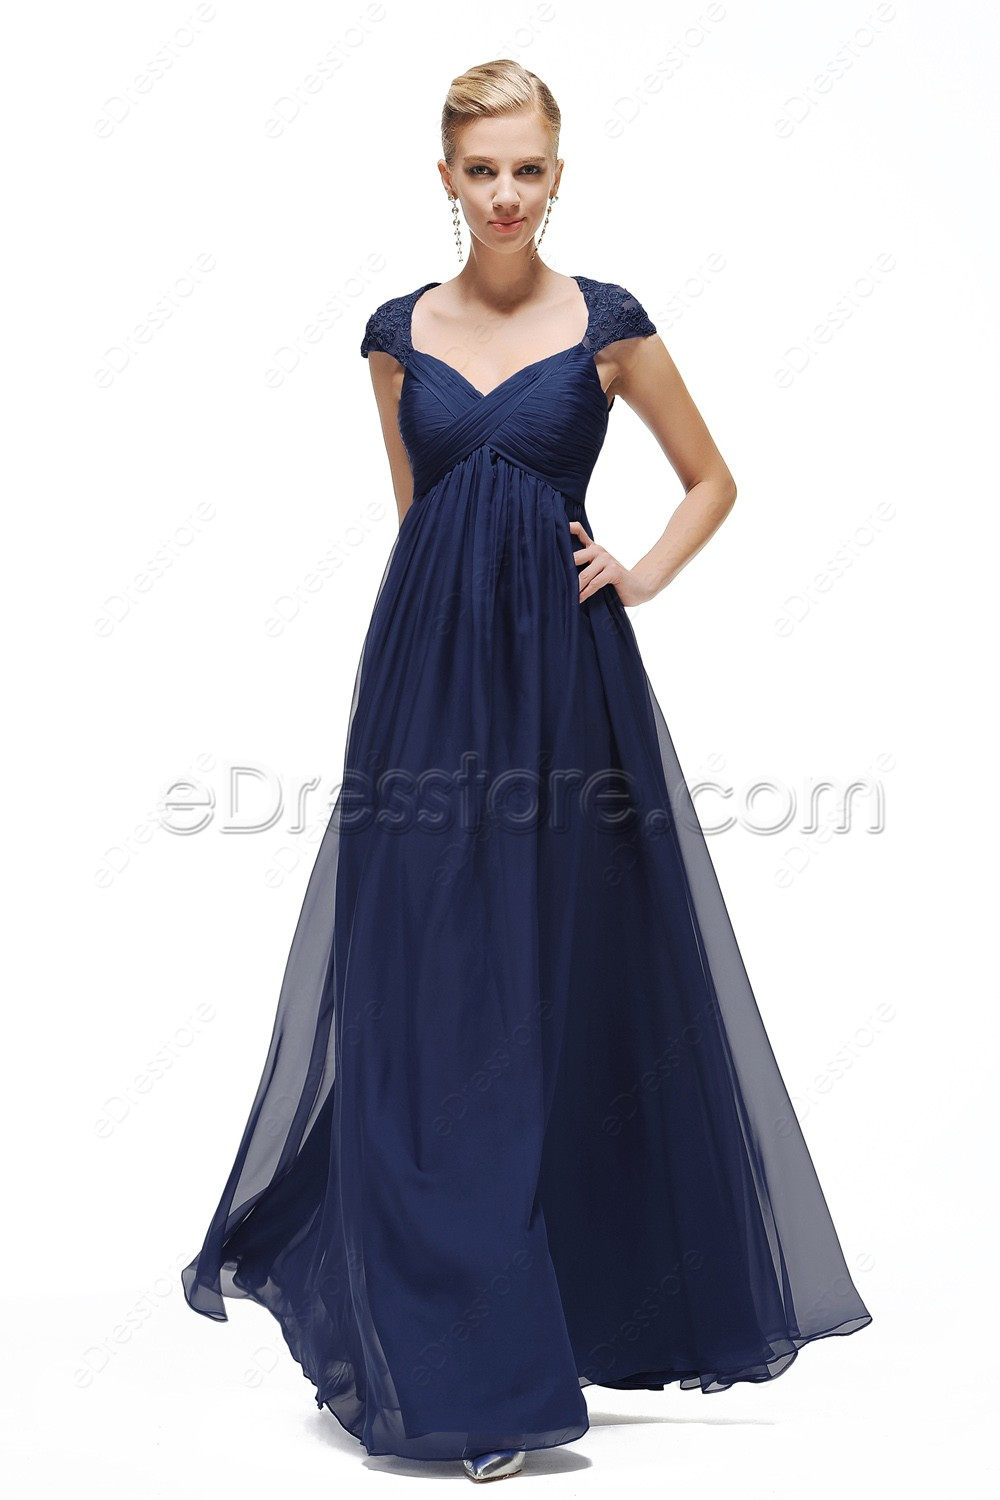 Modest prom dresses under 100 discount wedding dresses for Maternity wedding dresses under 100